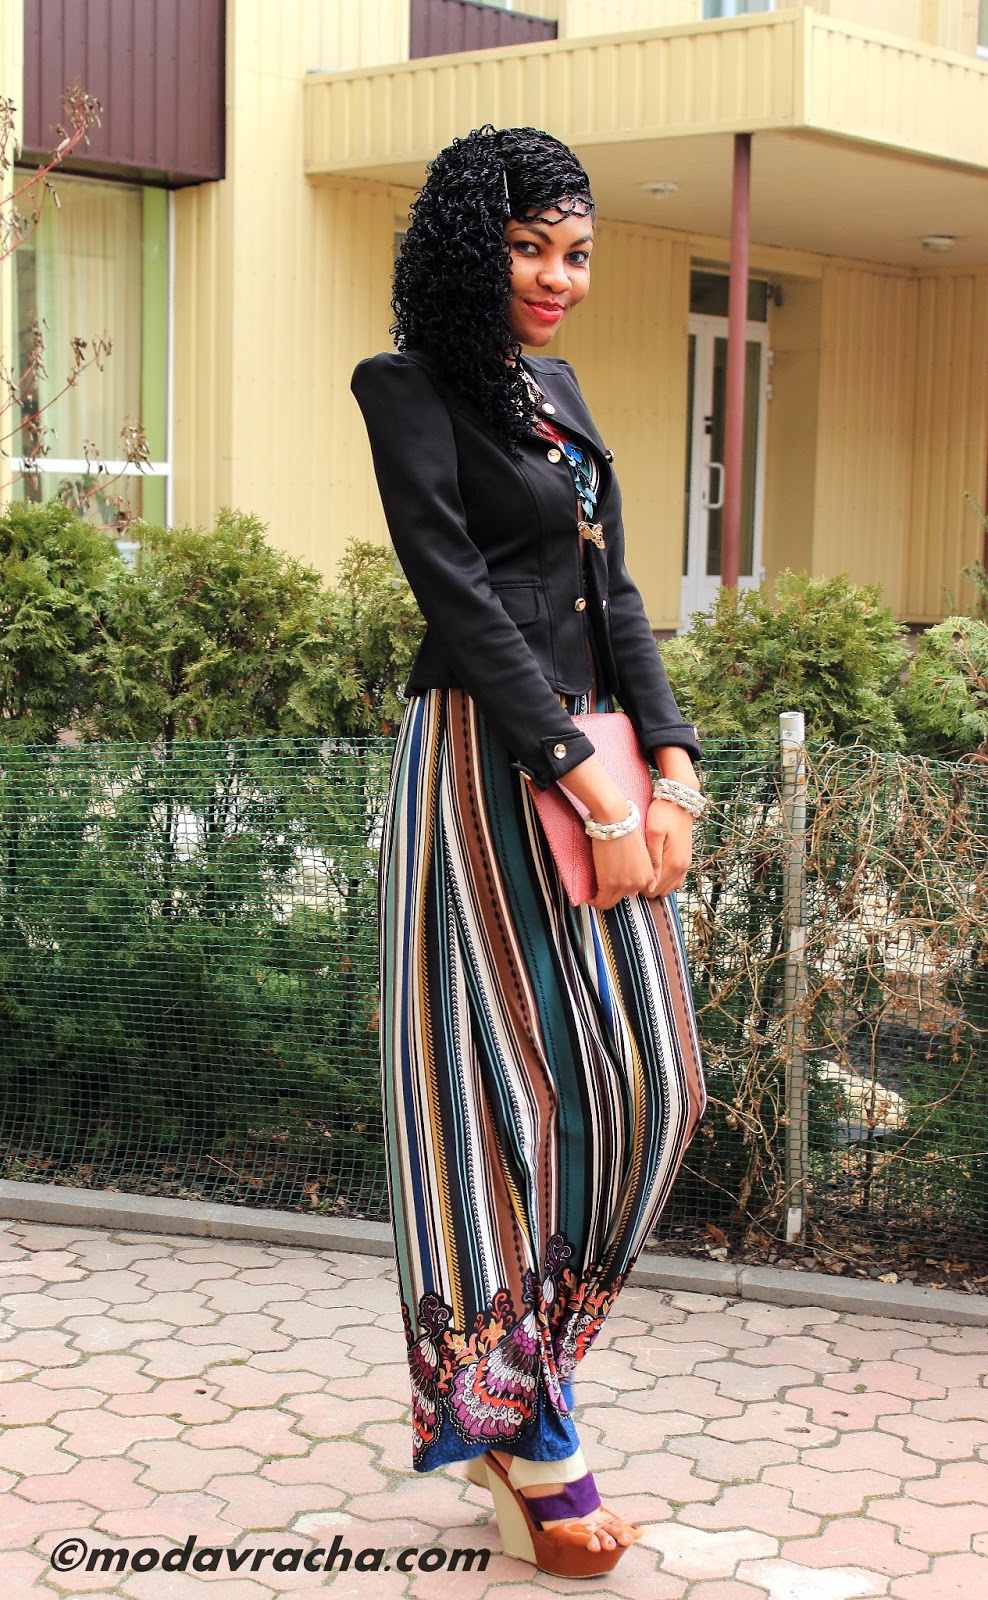 Nigerian fashion blogger modavracha